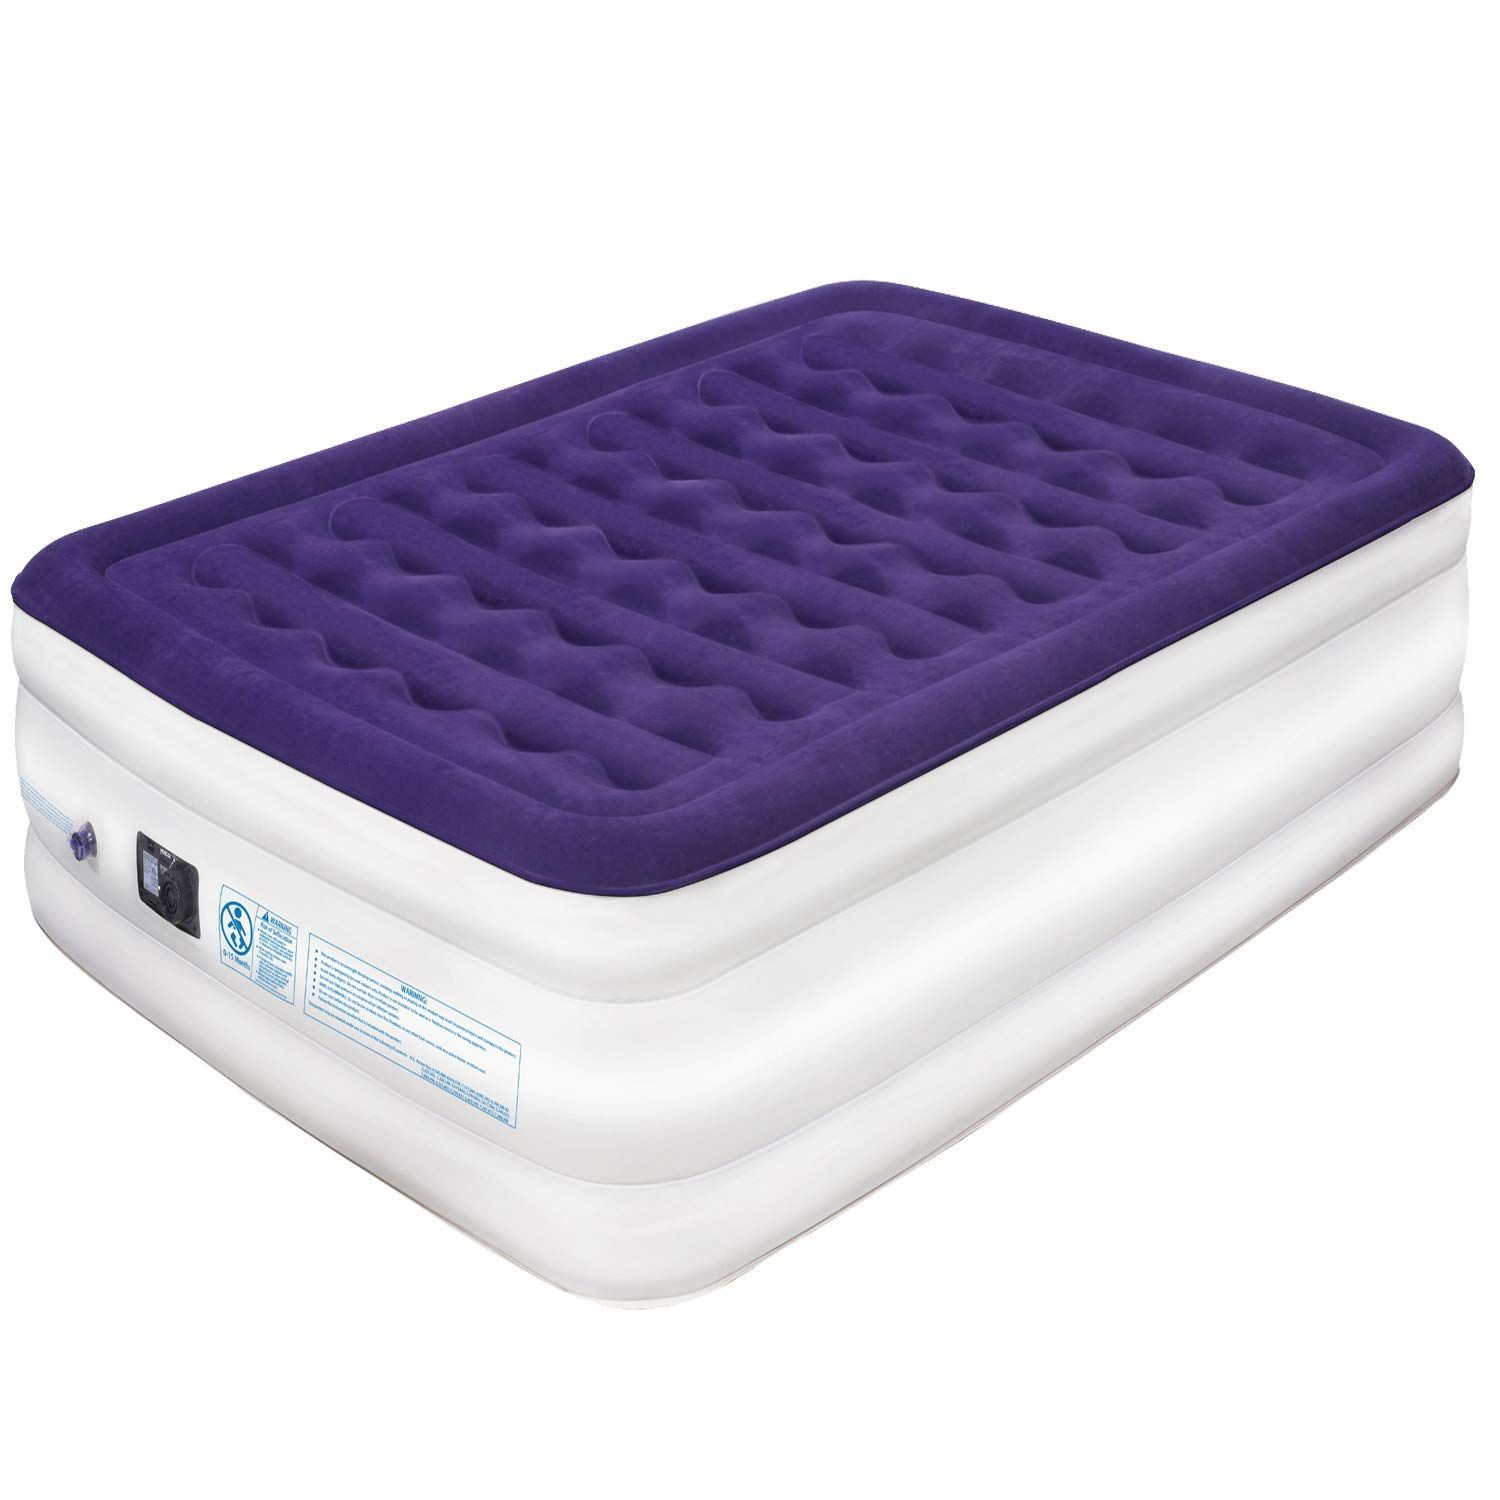 Yeacar Air Mattress Blow Up Raised Airbed Portable Inflatable Bed Queen Size For 34 43 Inflatable Bed Mattress Air Mattress